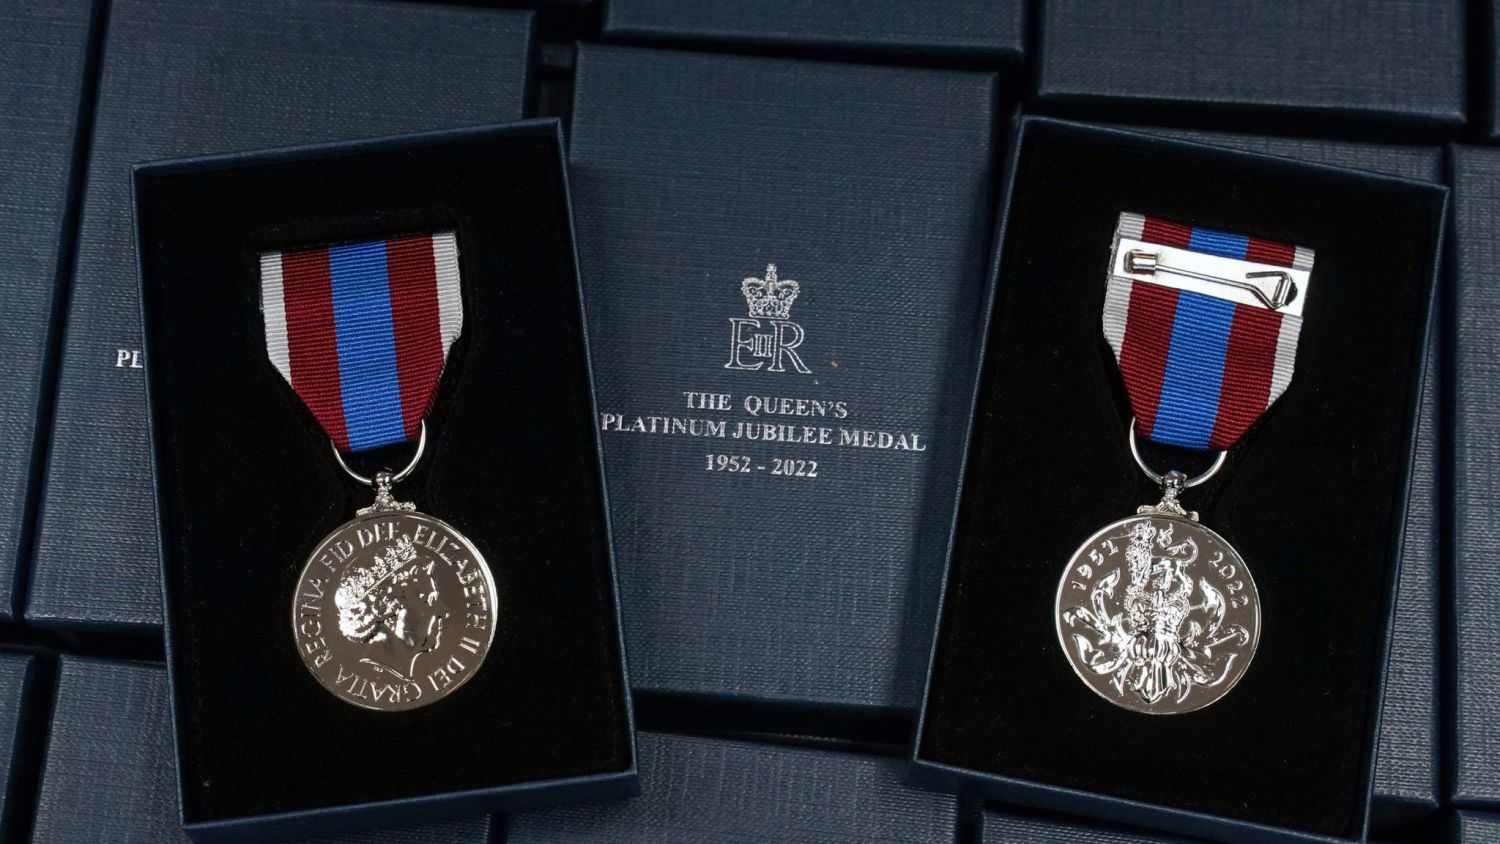 A medal has been released to mark The Queen's 70 years on the throne (DCMS/Crown Copyright)